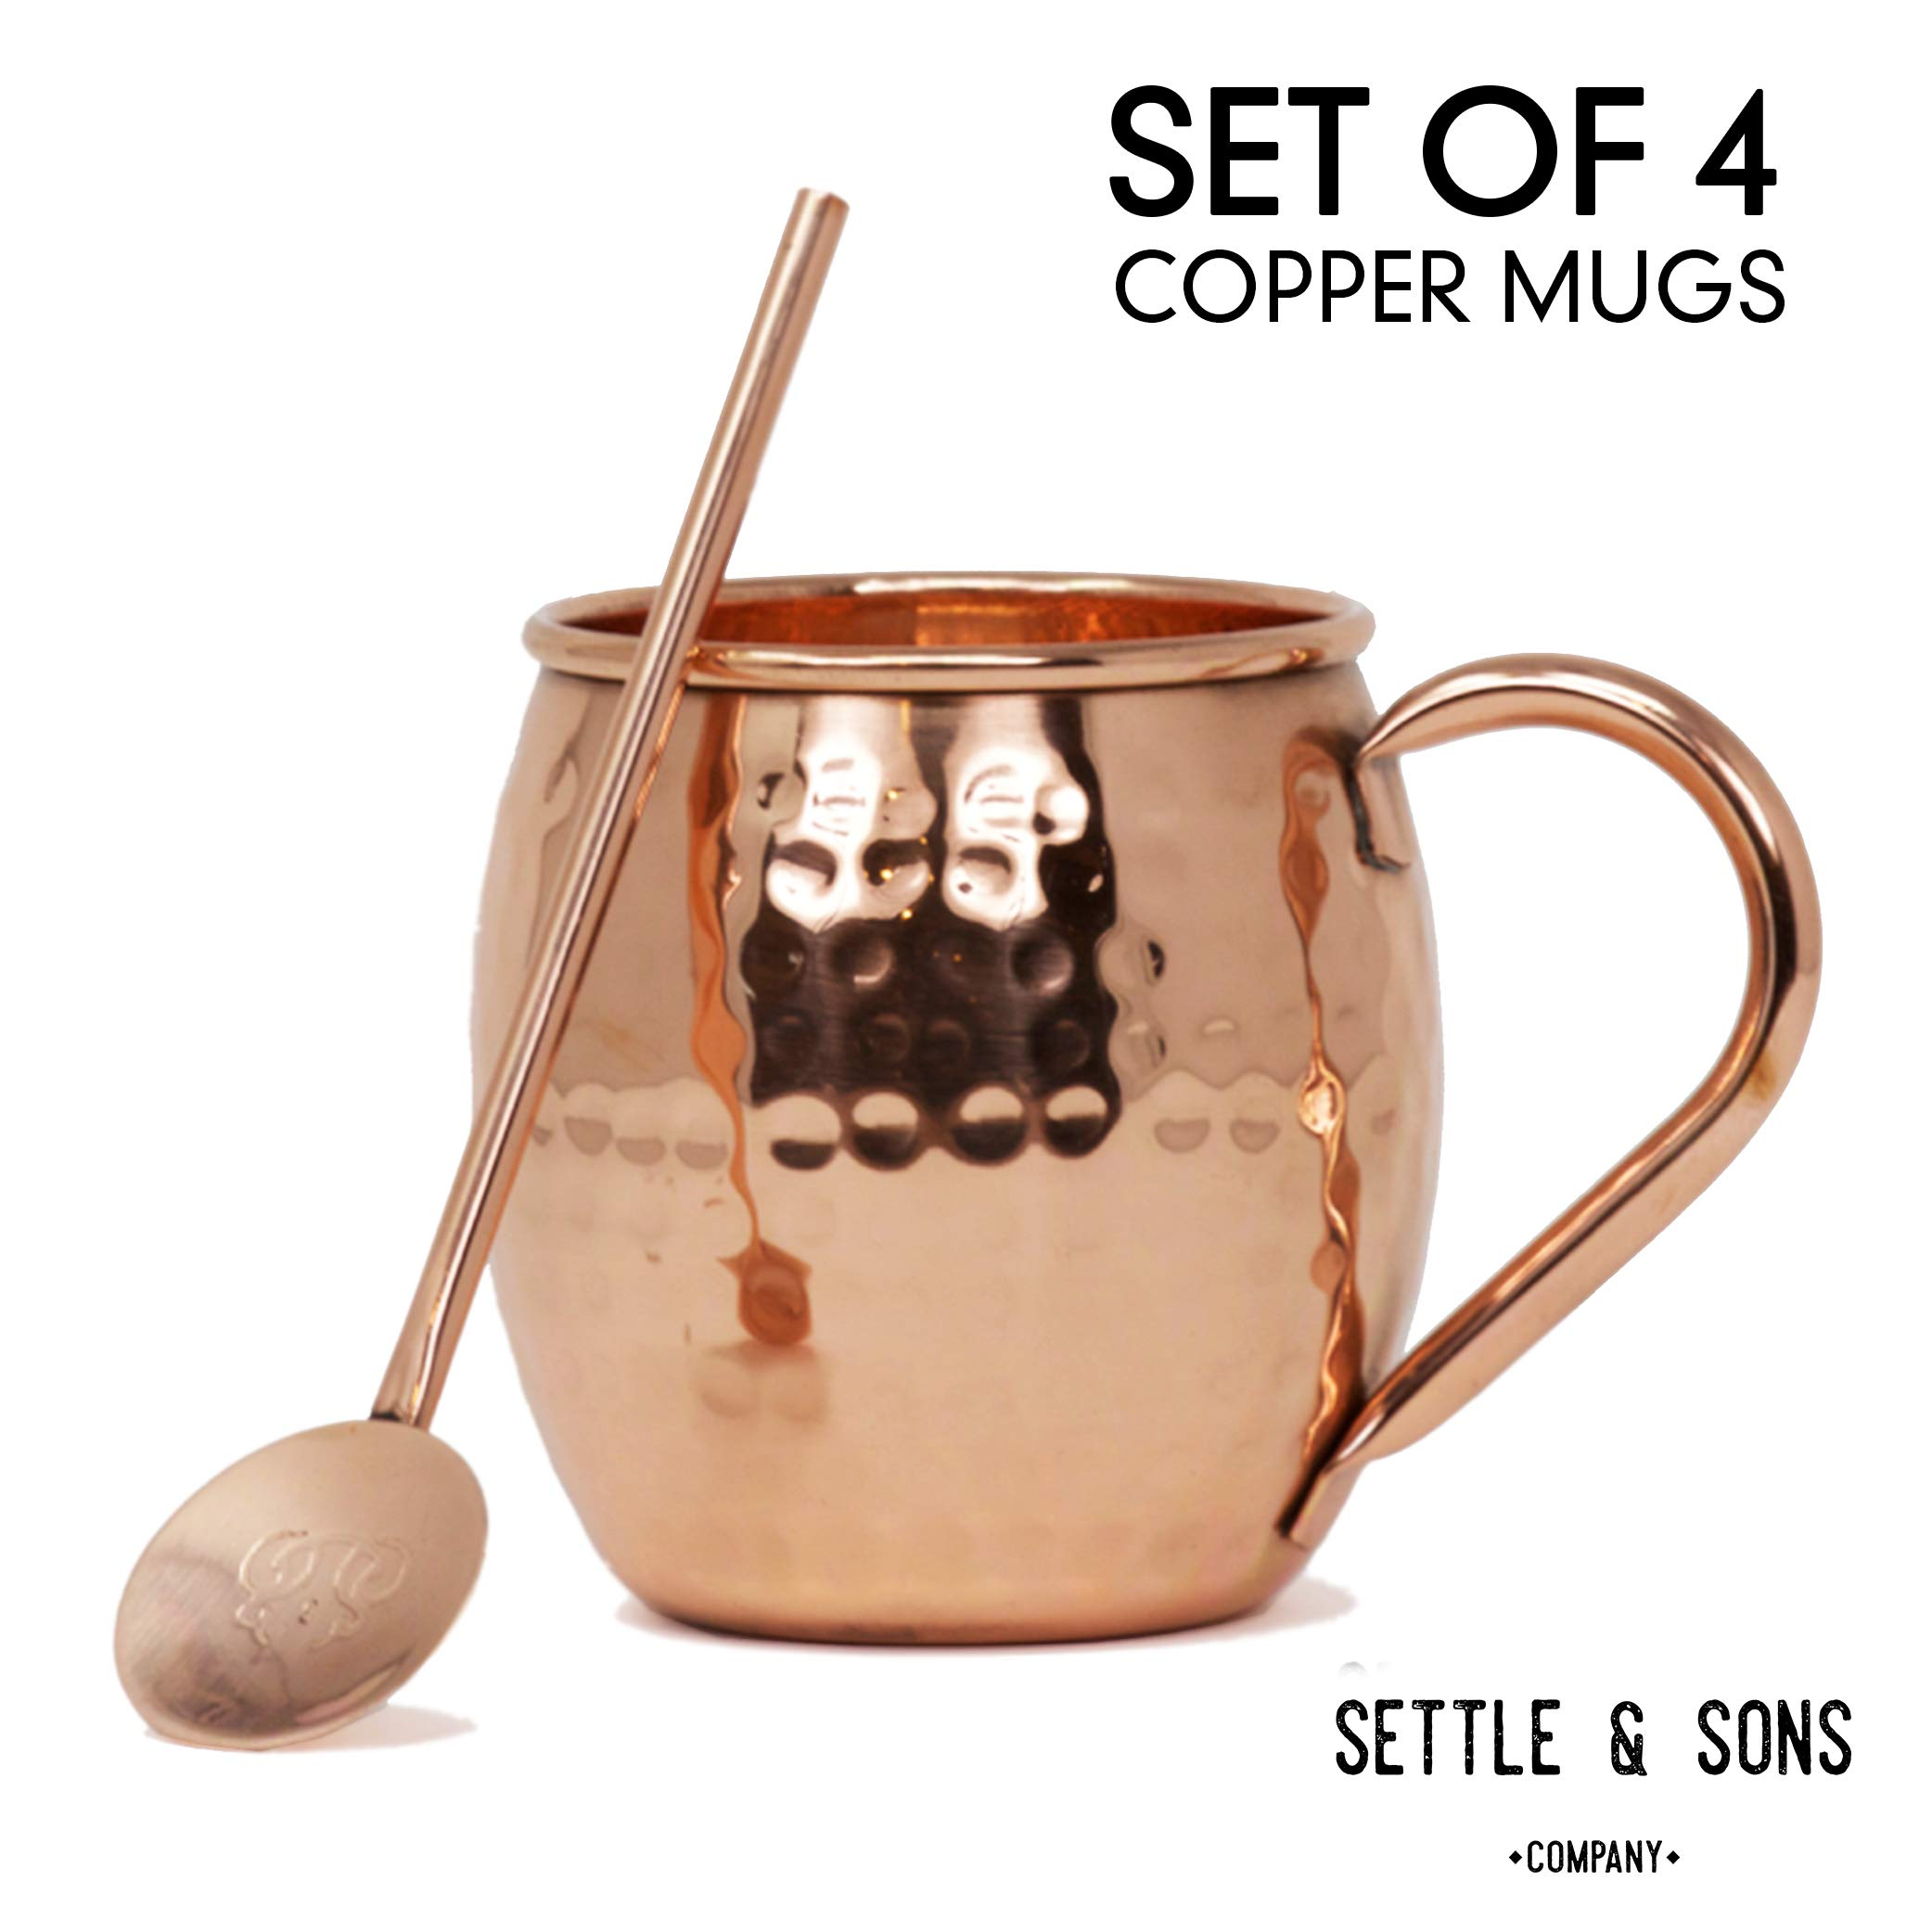 Moscow Mule Copper Mugs Set of 4. 16 Ounce 100% Solid Copper Mugs and 4 Copper Cocktail Straws